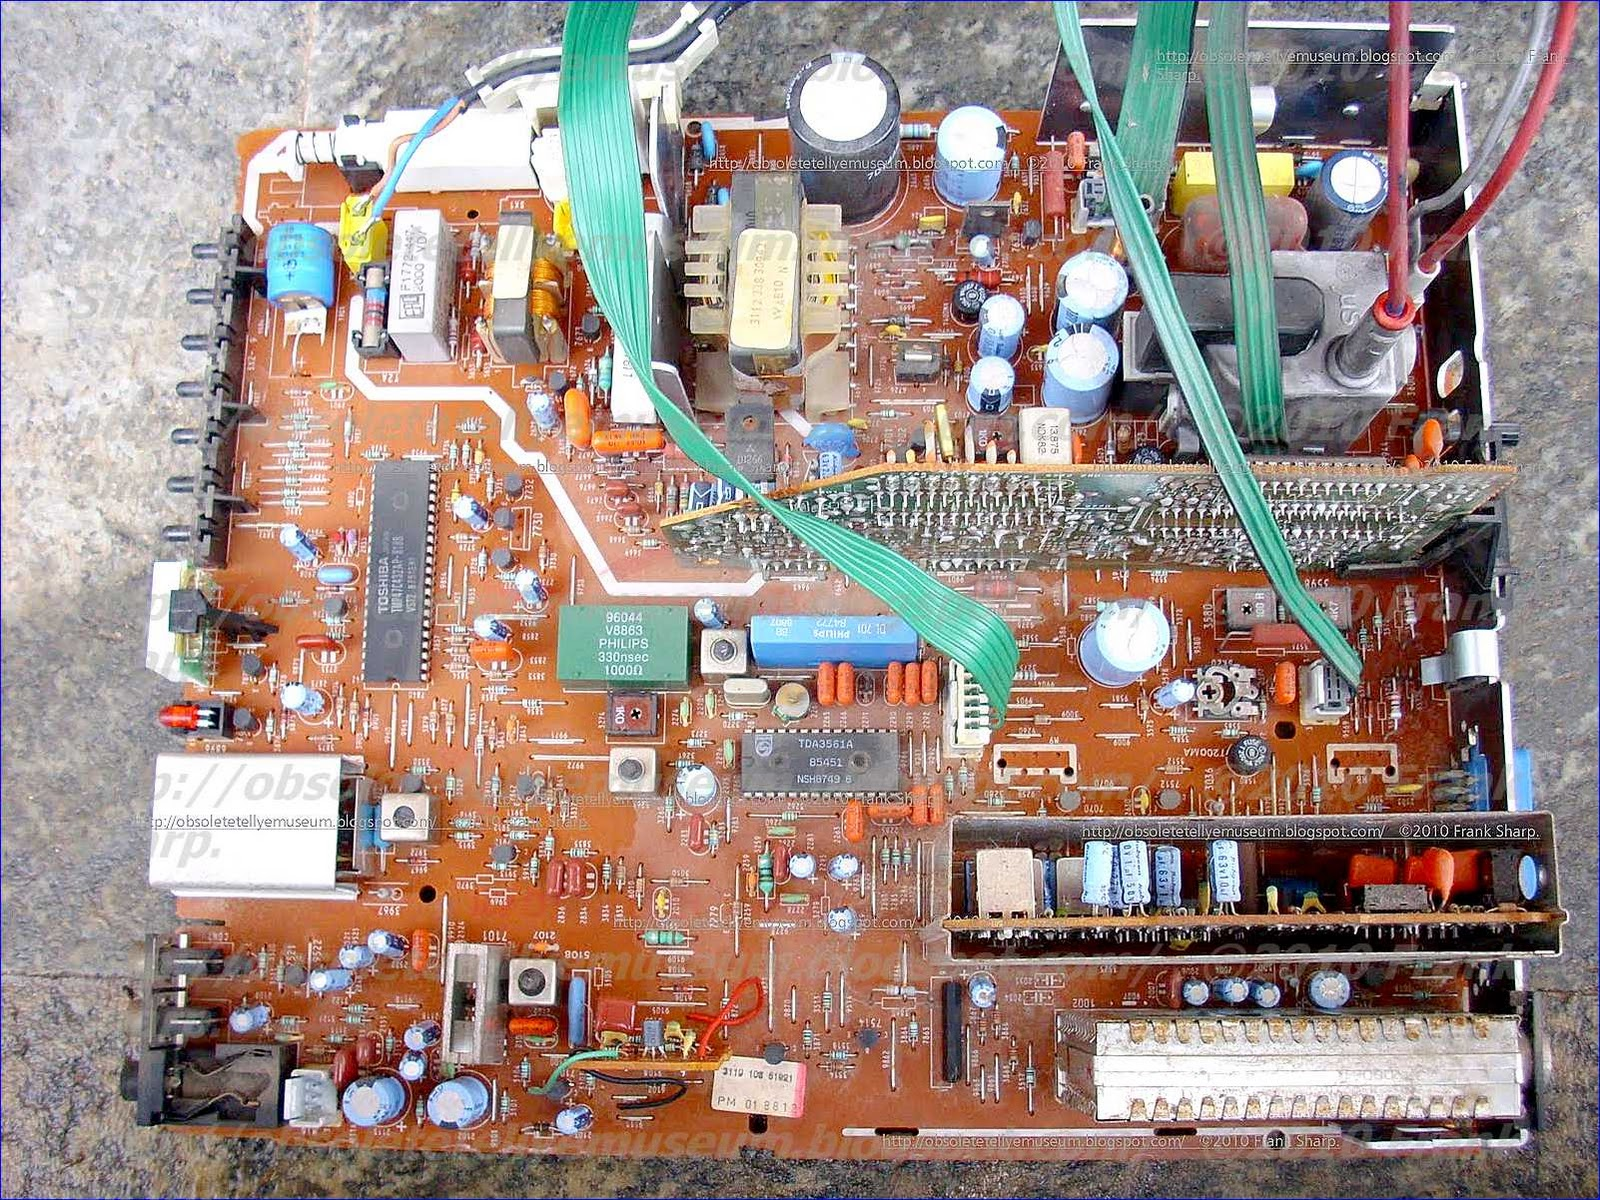 Obsolete Technology Tellye Bang Olufsen Beovision Mx1500 Ic Based Tv Transmitter Circuit The Starting Is Taken From Pin 10 Via Internal Diodes And Voltage On 16 Will Stabilize To A Typical Value Of 94 V